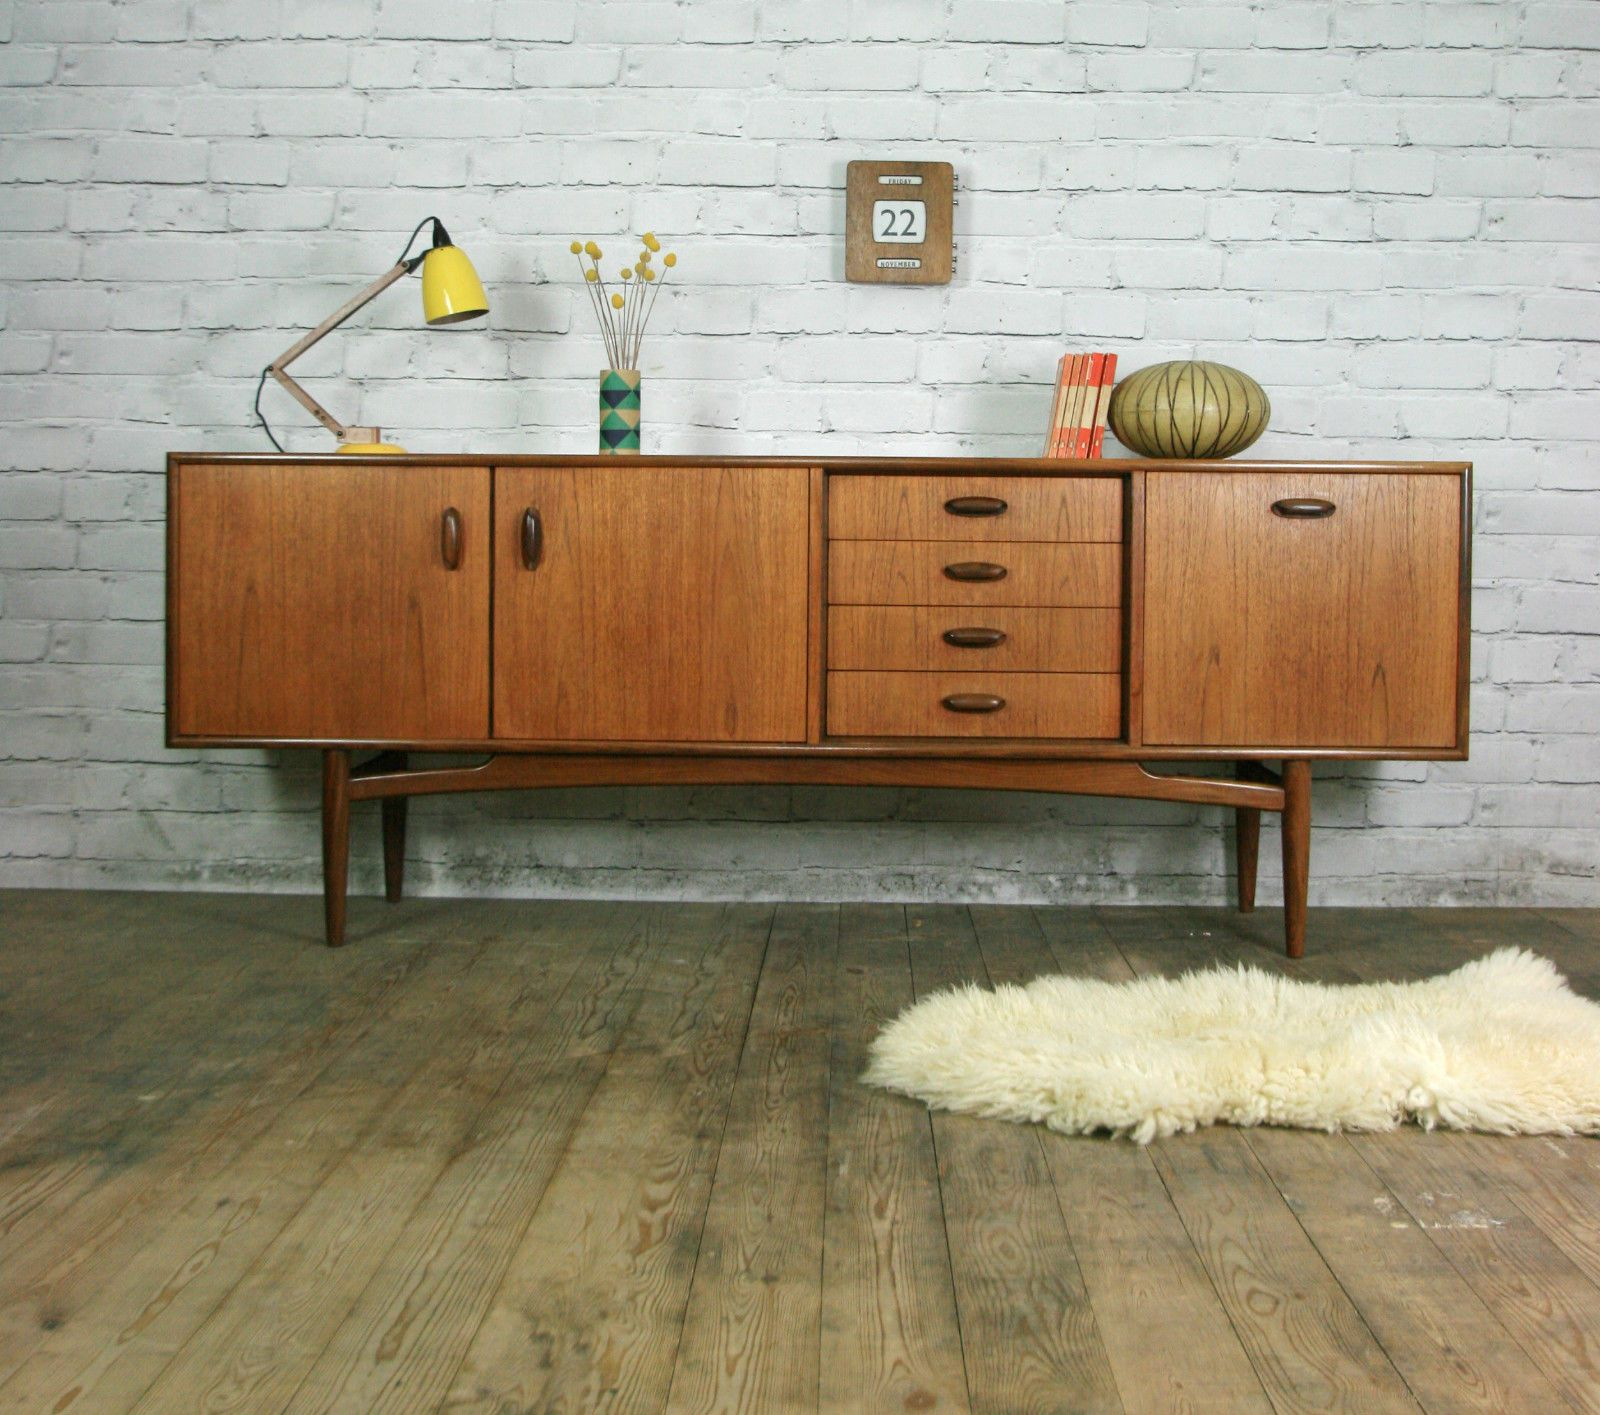 G plan retro vintage teak mid century sideboard eames era for G plan dining room furniture sale